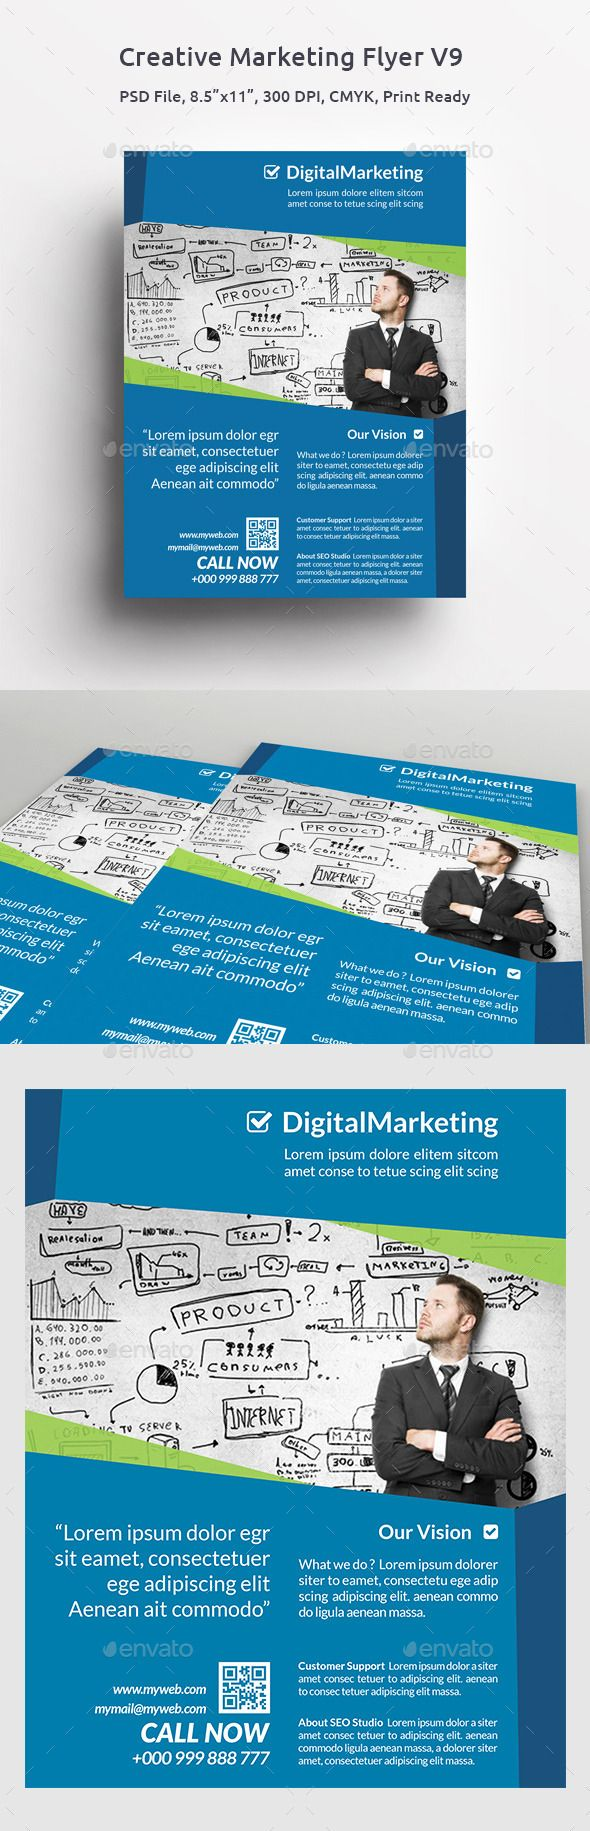 best images about flyer creative marketing flyer v9 corporate flyers